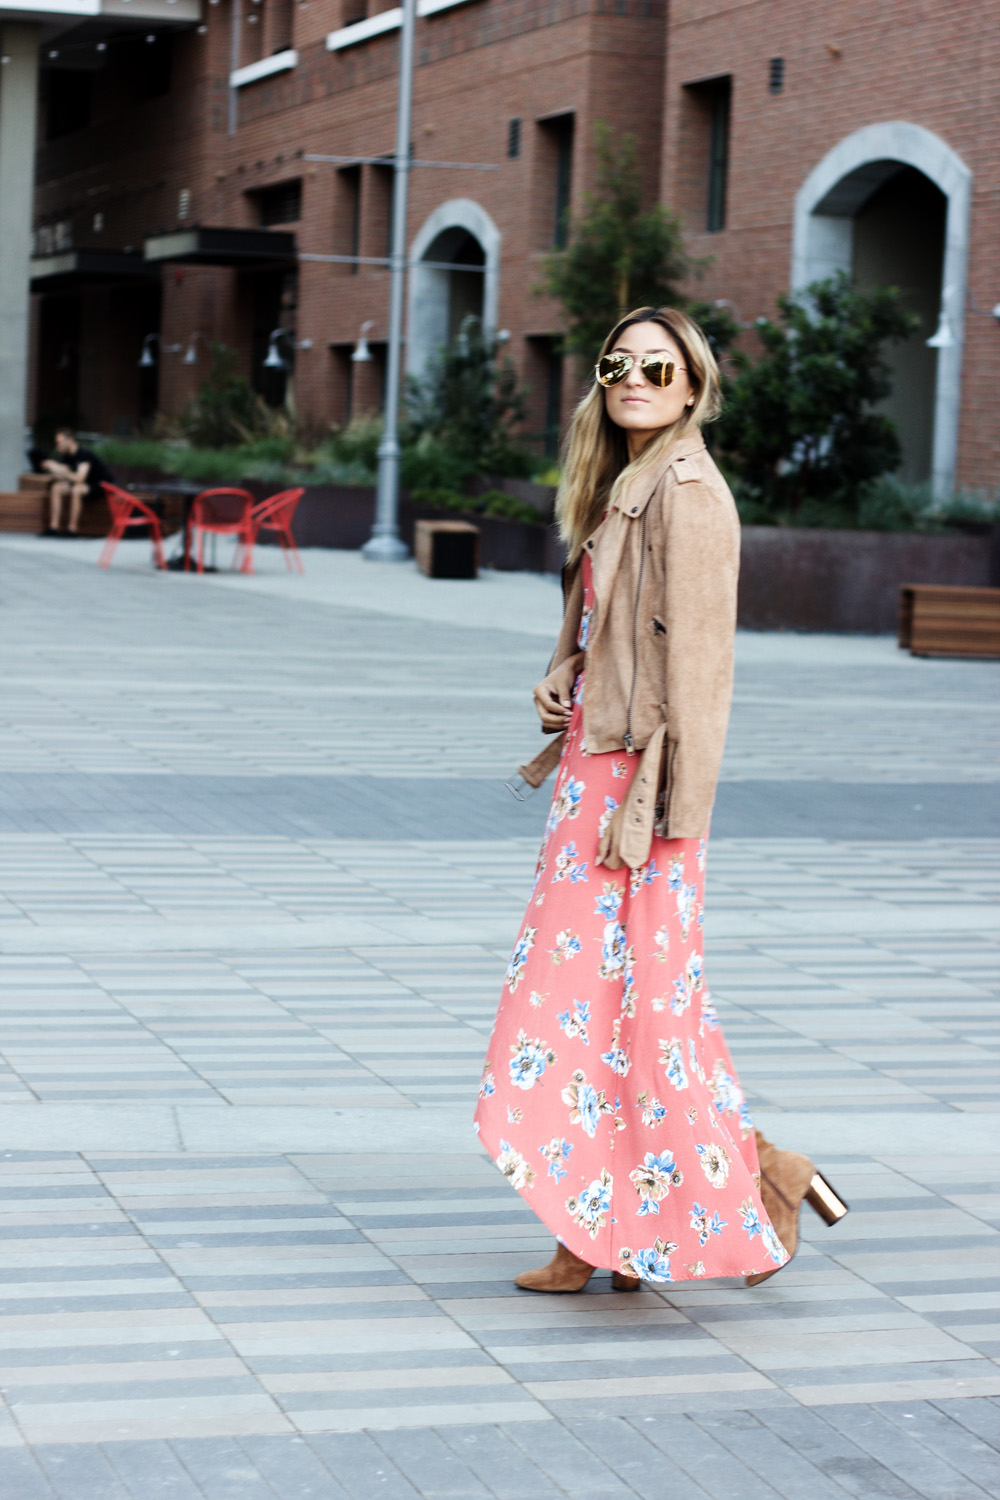 bare rebel, floral, fall, florals, floral maxi dress, ootd, mexican blogger, la blogger, latina blogger, hispanic blogger, street style, los angeles blogger, outfit, fashion, style